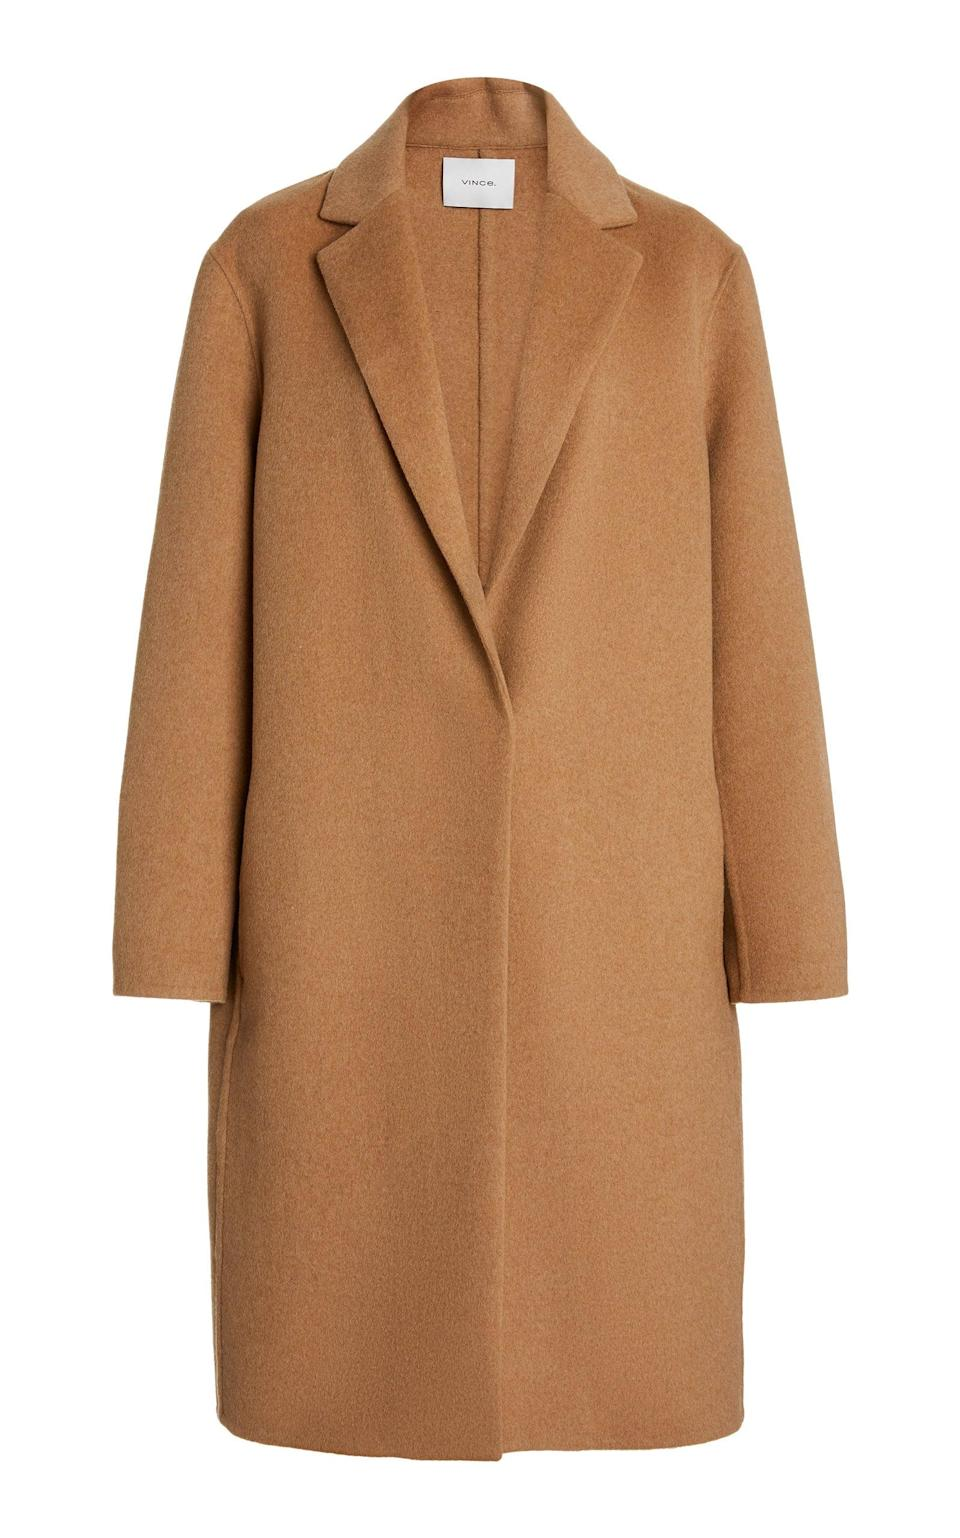 <p>This <span>Vince Classic Wool-Blend Coat</span> ($521, originally $695) is an iconic piece that is seasonless and classic. We'd wear it with everything, from day to night.</p>